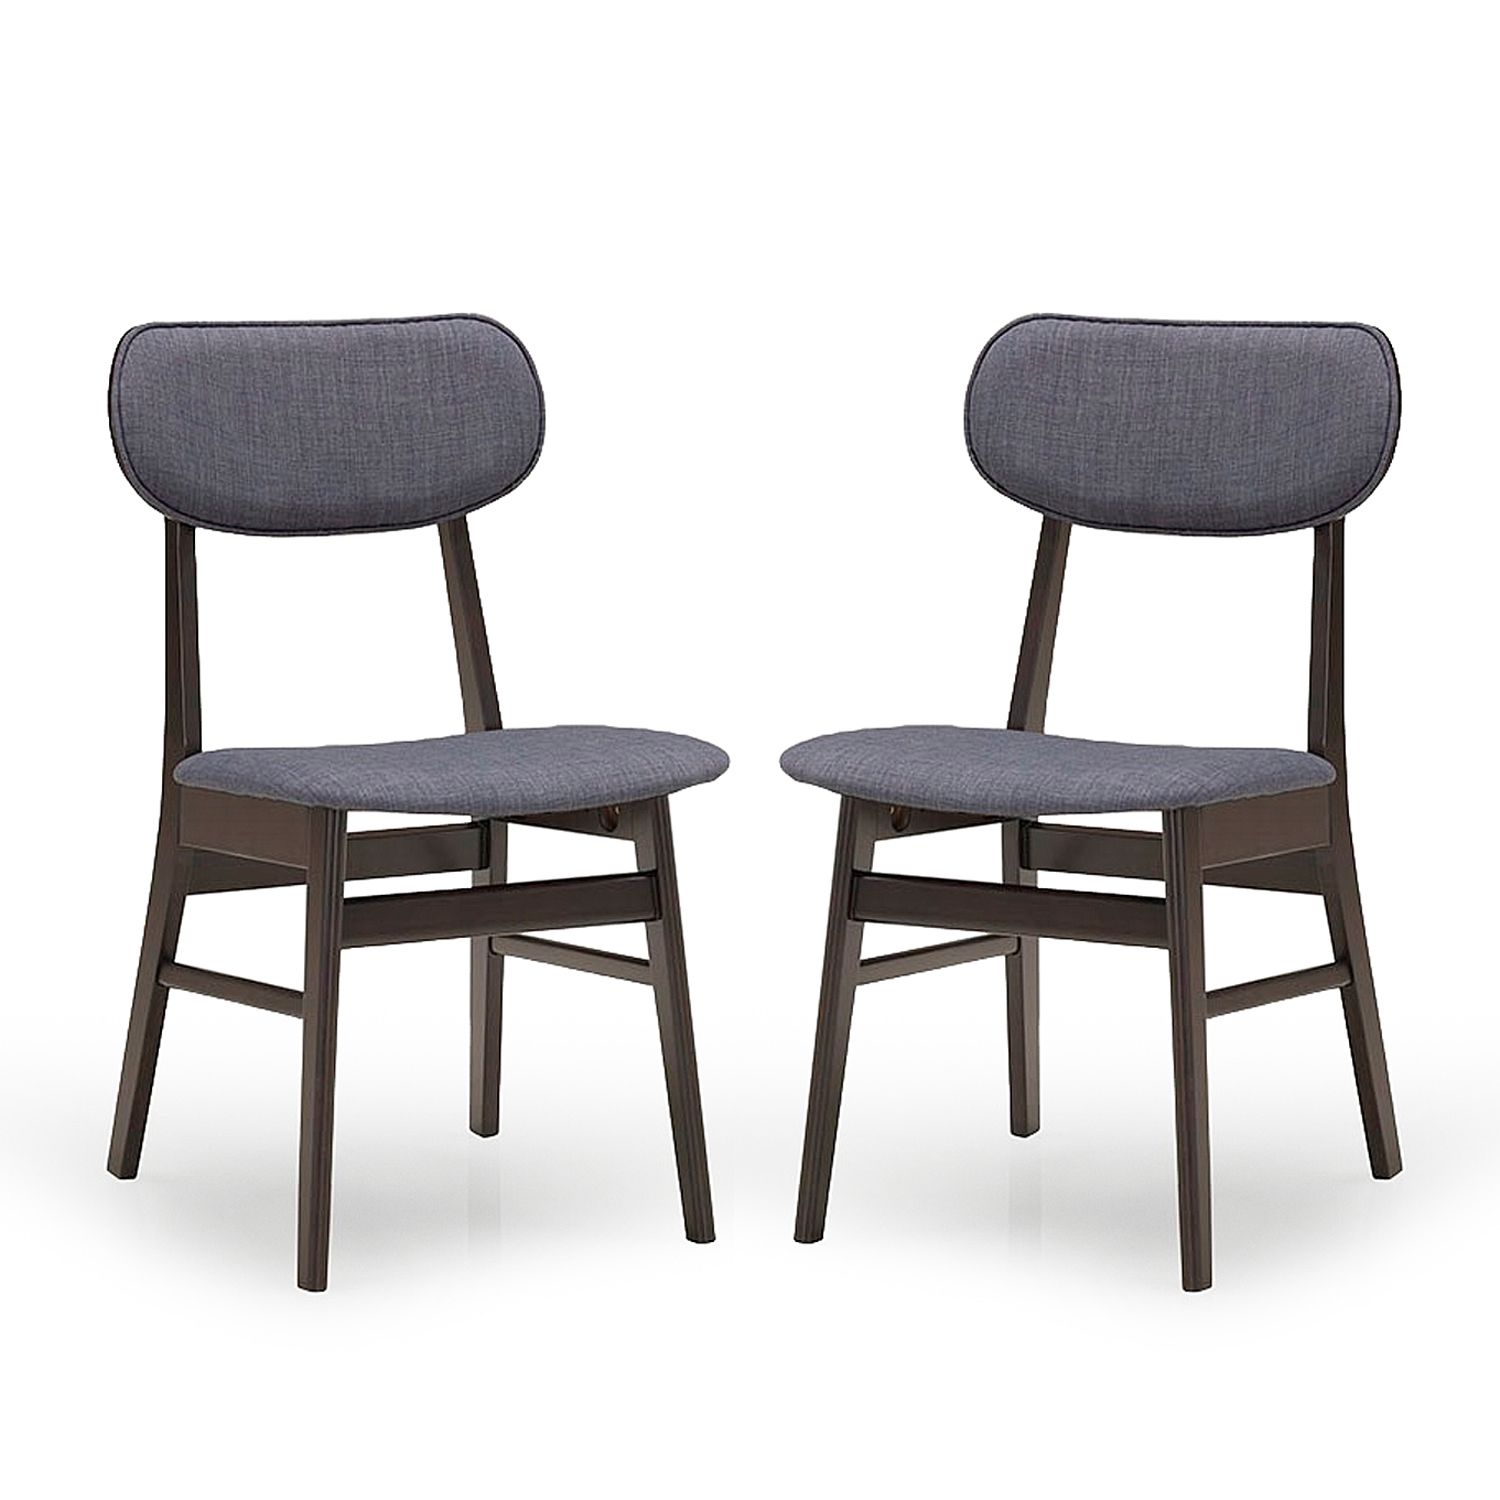 Cheap Wood Dining Chairs: Bedding, Furniture, Electronics, Jewelry